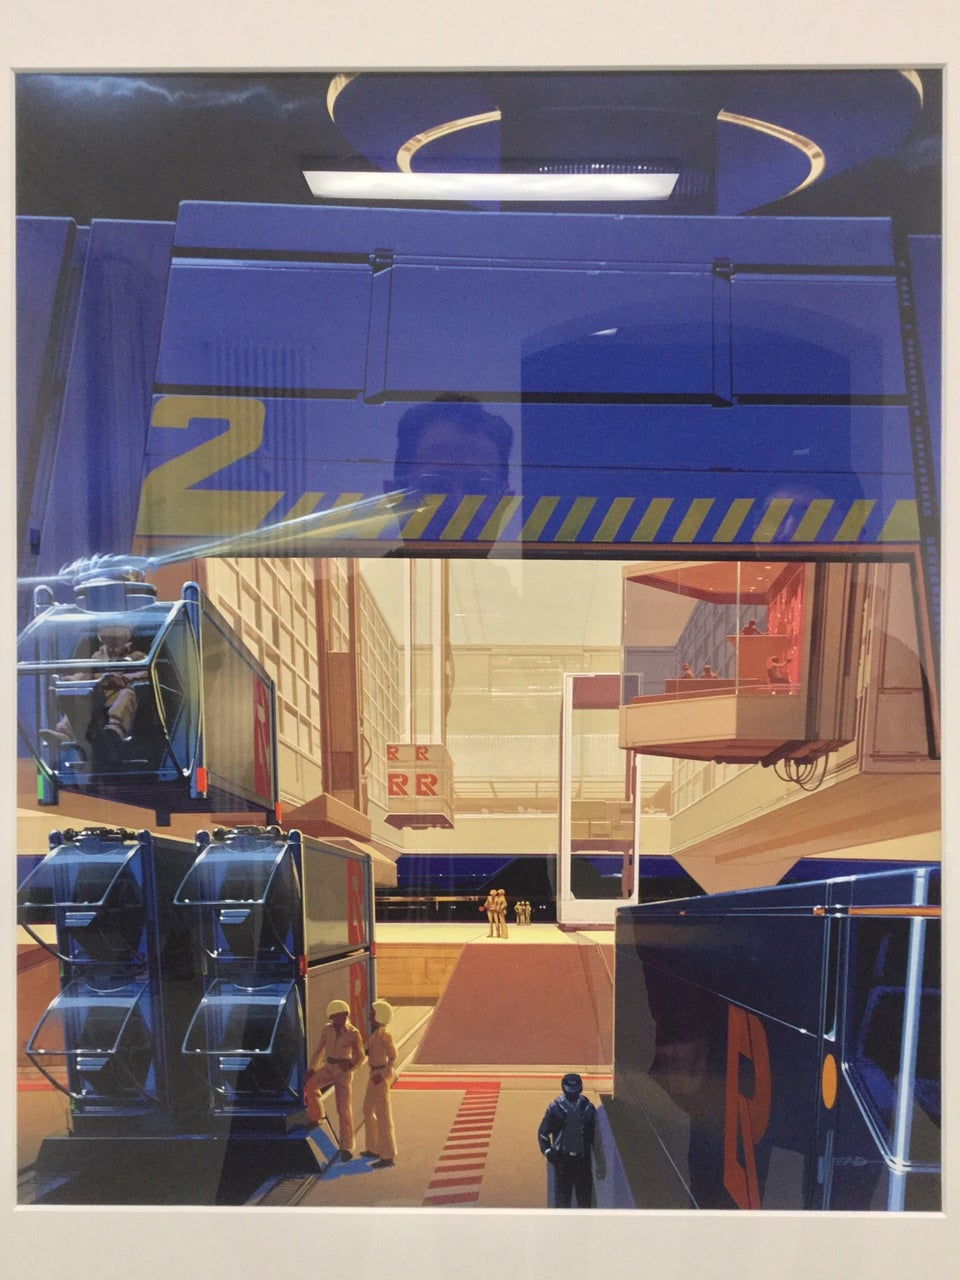 Photo-realistic painting of a futuristic loading dock with sharp lines, boxy designs, shipping containers being lowered by helicopter like attachments and bubble cockpits, onto stacks of containers in columns, pilots disembarking, a control center booth with large windows elevated behind them, a light colored wall behind them with a wide opening at floor level tall enough for the containers come and go, behind it a subtle night time cityscape in the distance with urban lighting.